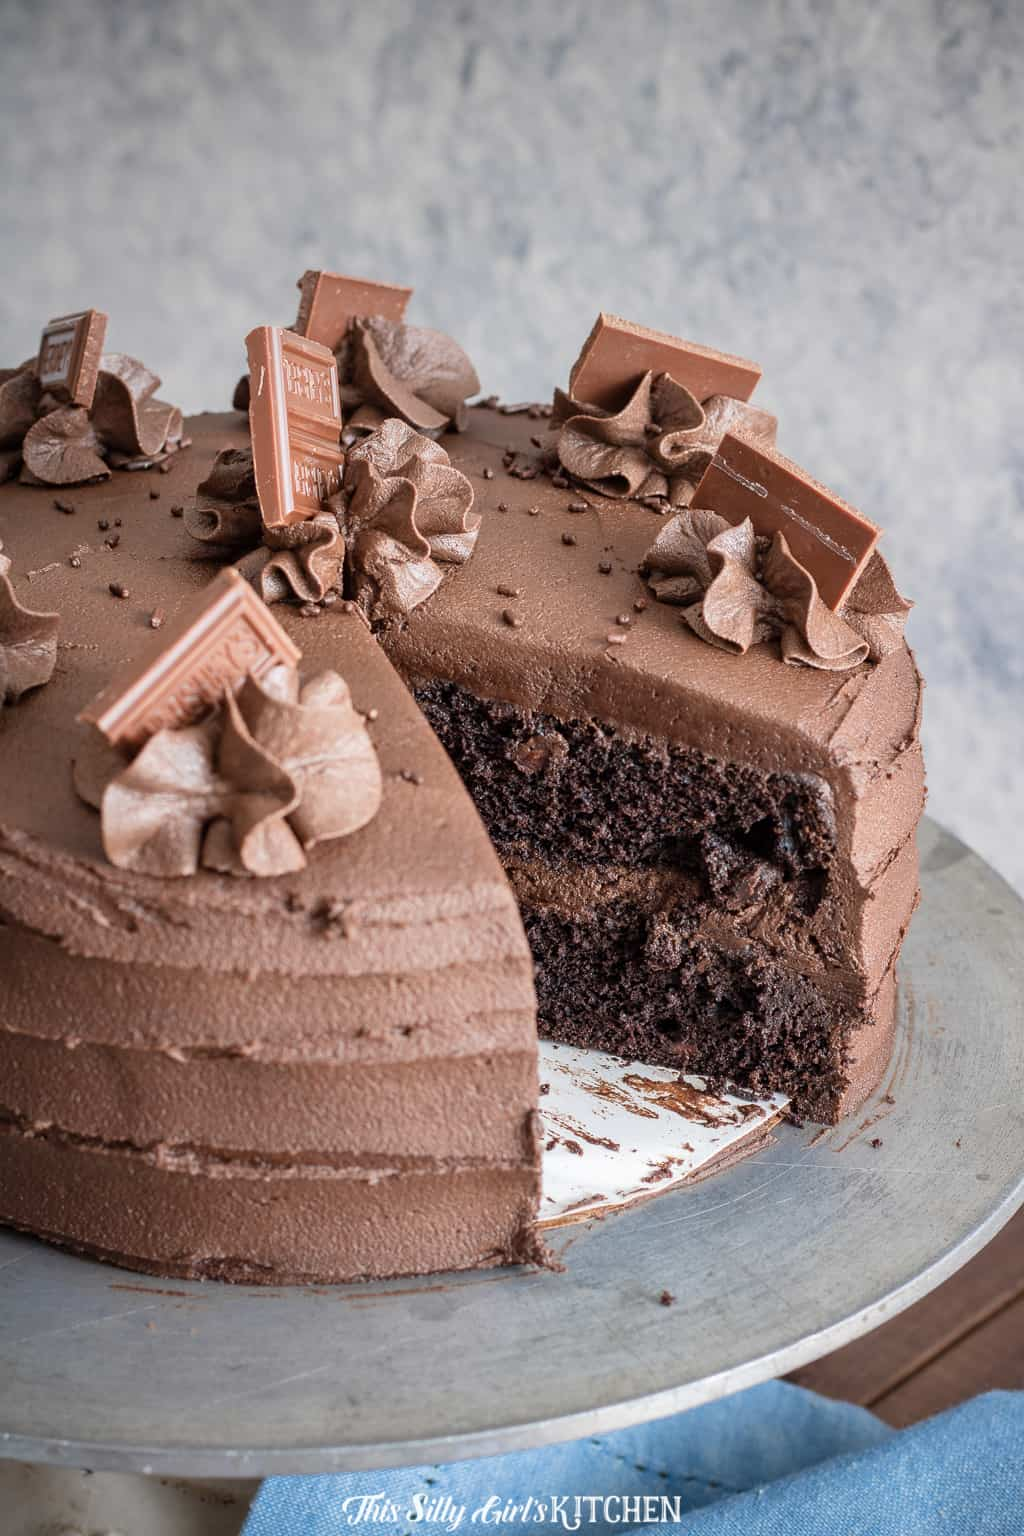 Chocolate Layer Cake with slice taken out